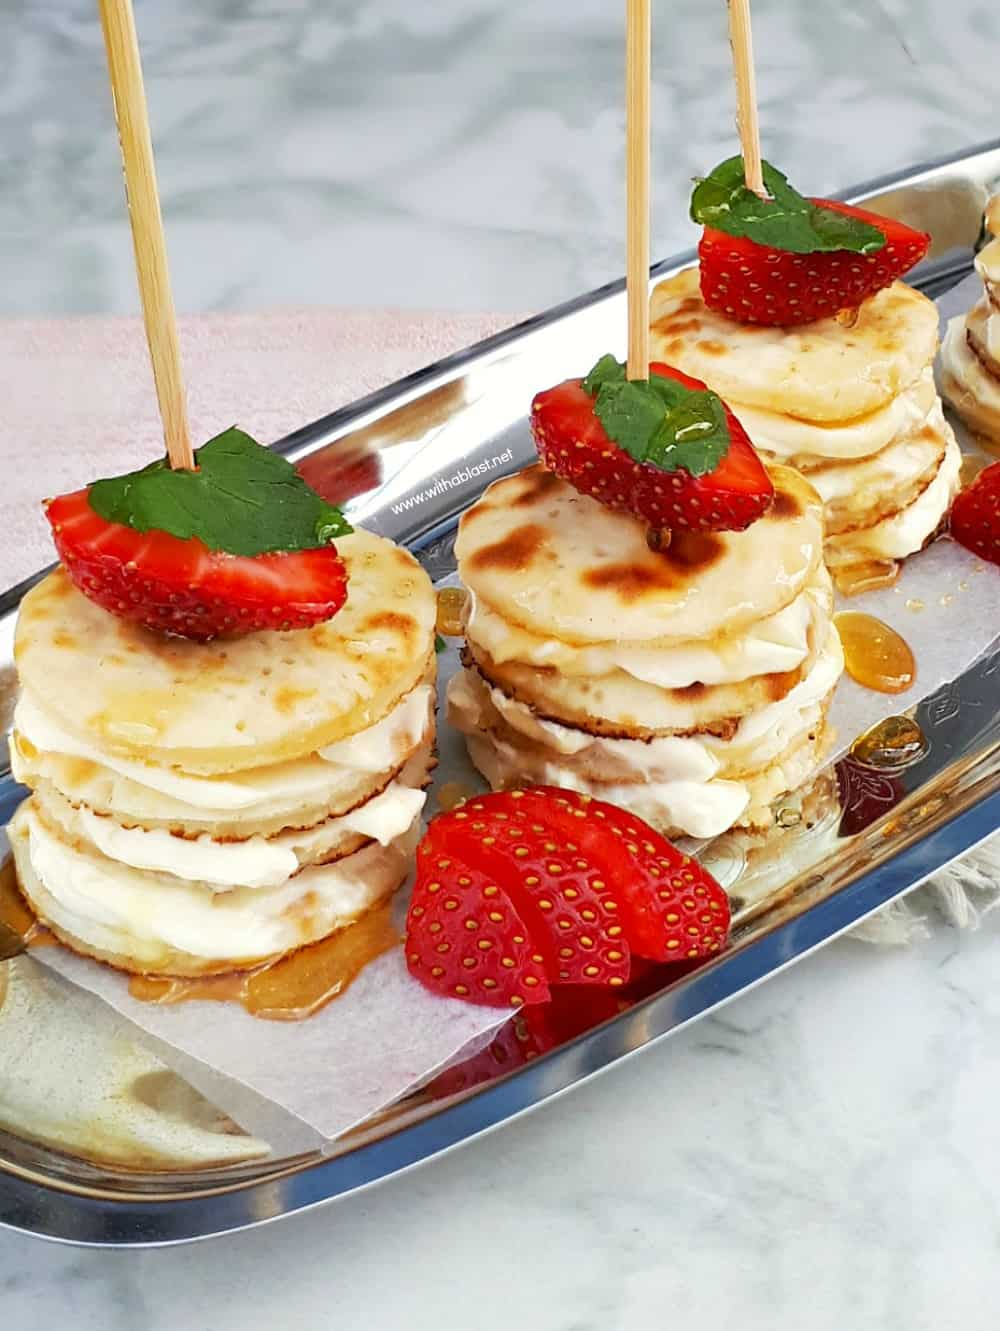 Deliciously Mascarpone Filled Mini Pancakes Stacks are perfect for a special breakfast, brunch or even a sweet treat. Perfect with Strawberries and drizzled with Honey! #PancakeStacks #MiniPancakes #FilledPancakes #BreakfastRecipes #SweetTreatRecipes